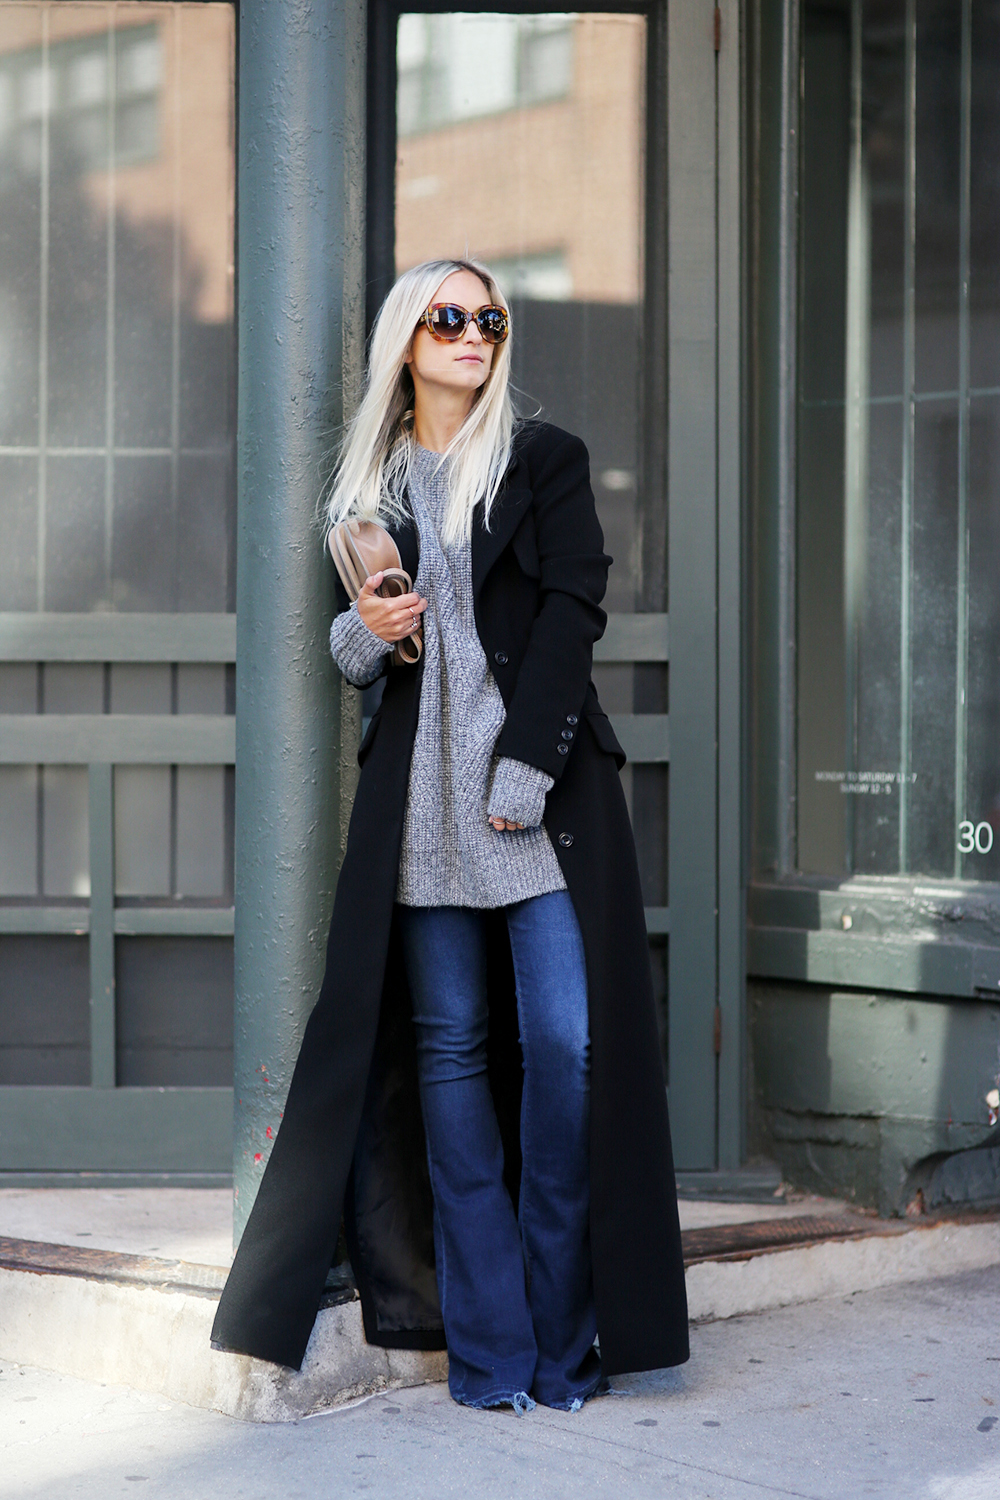 The Maxi Coat Long Coat Trend That You Will Be Wearing In